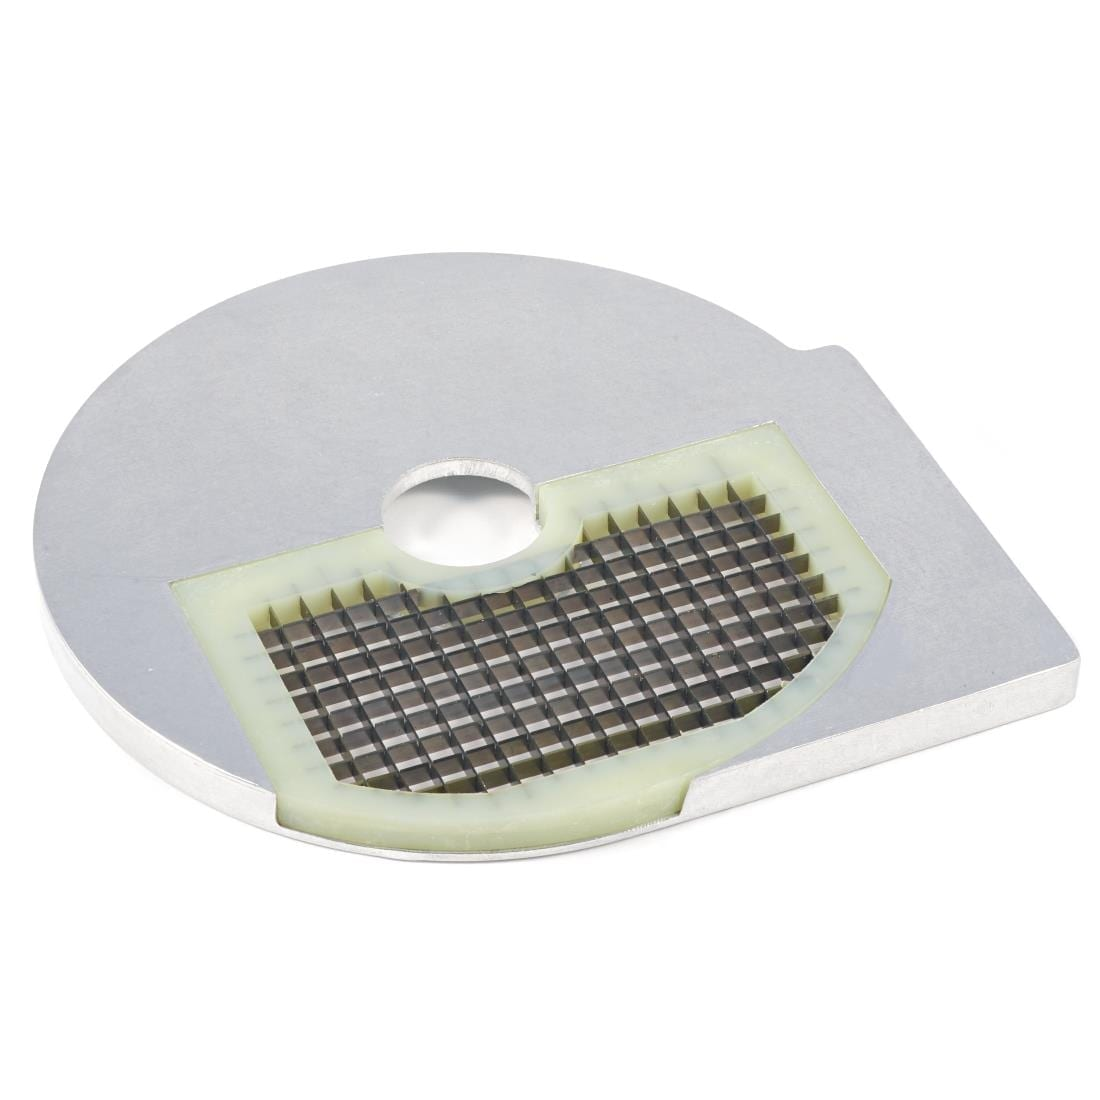 Buffalo 8x8mm Dicing Disc (not suitable for dicing onions or tomatoes.)